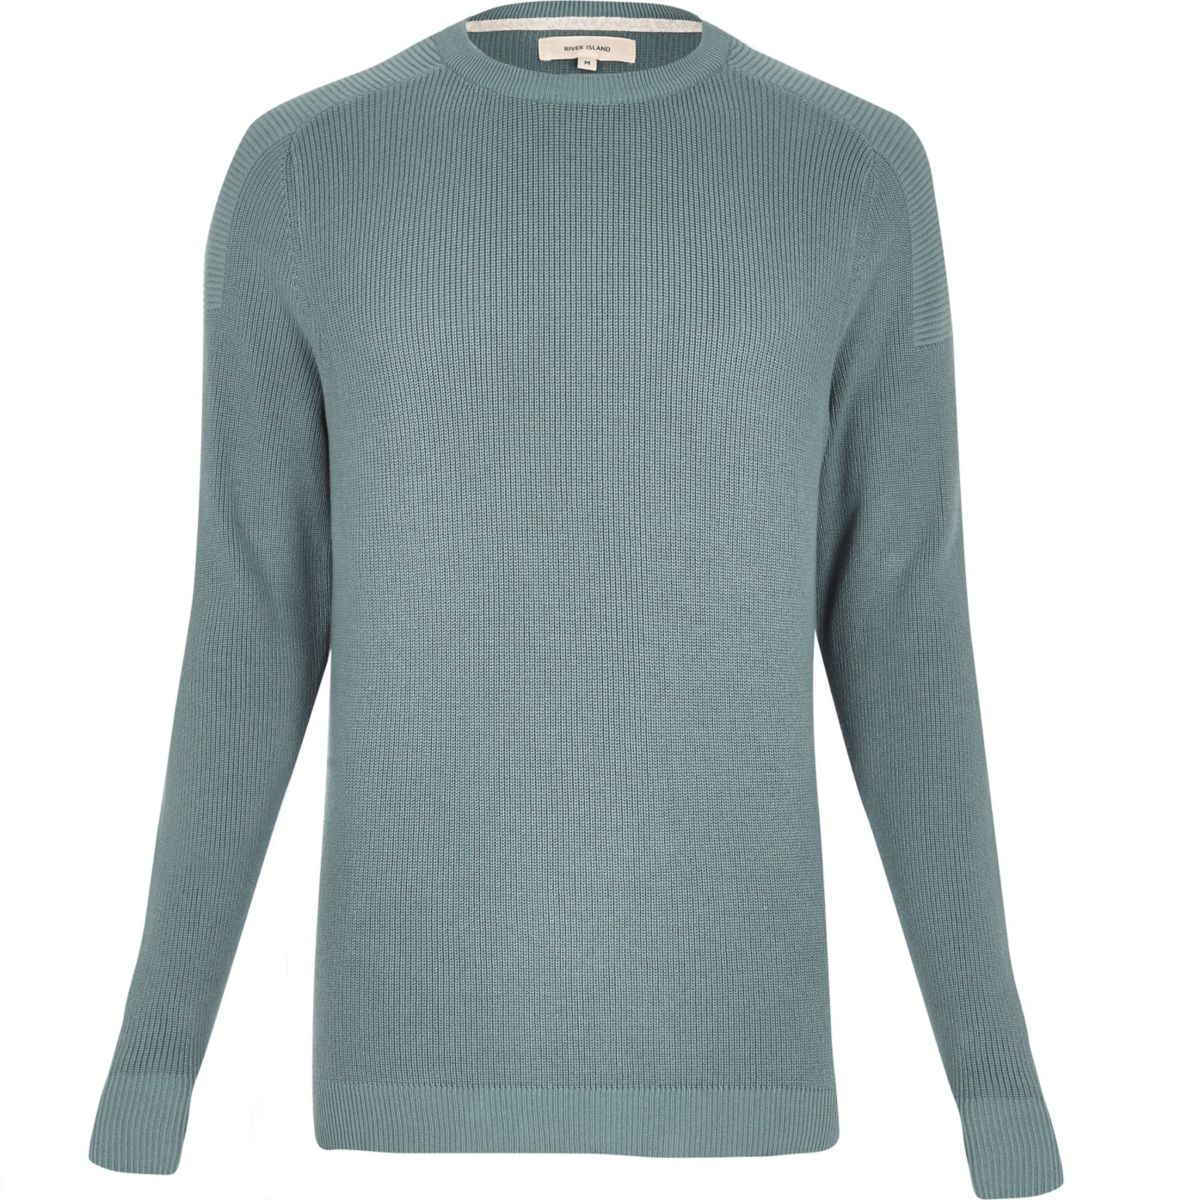 Teal ribbed crew neck long sleeve sweater